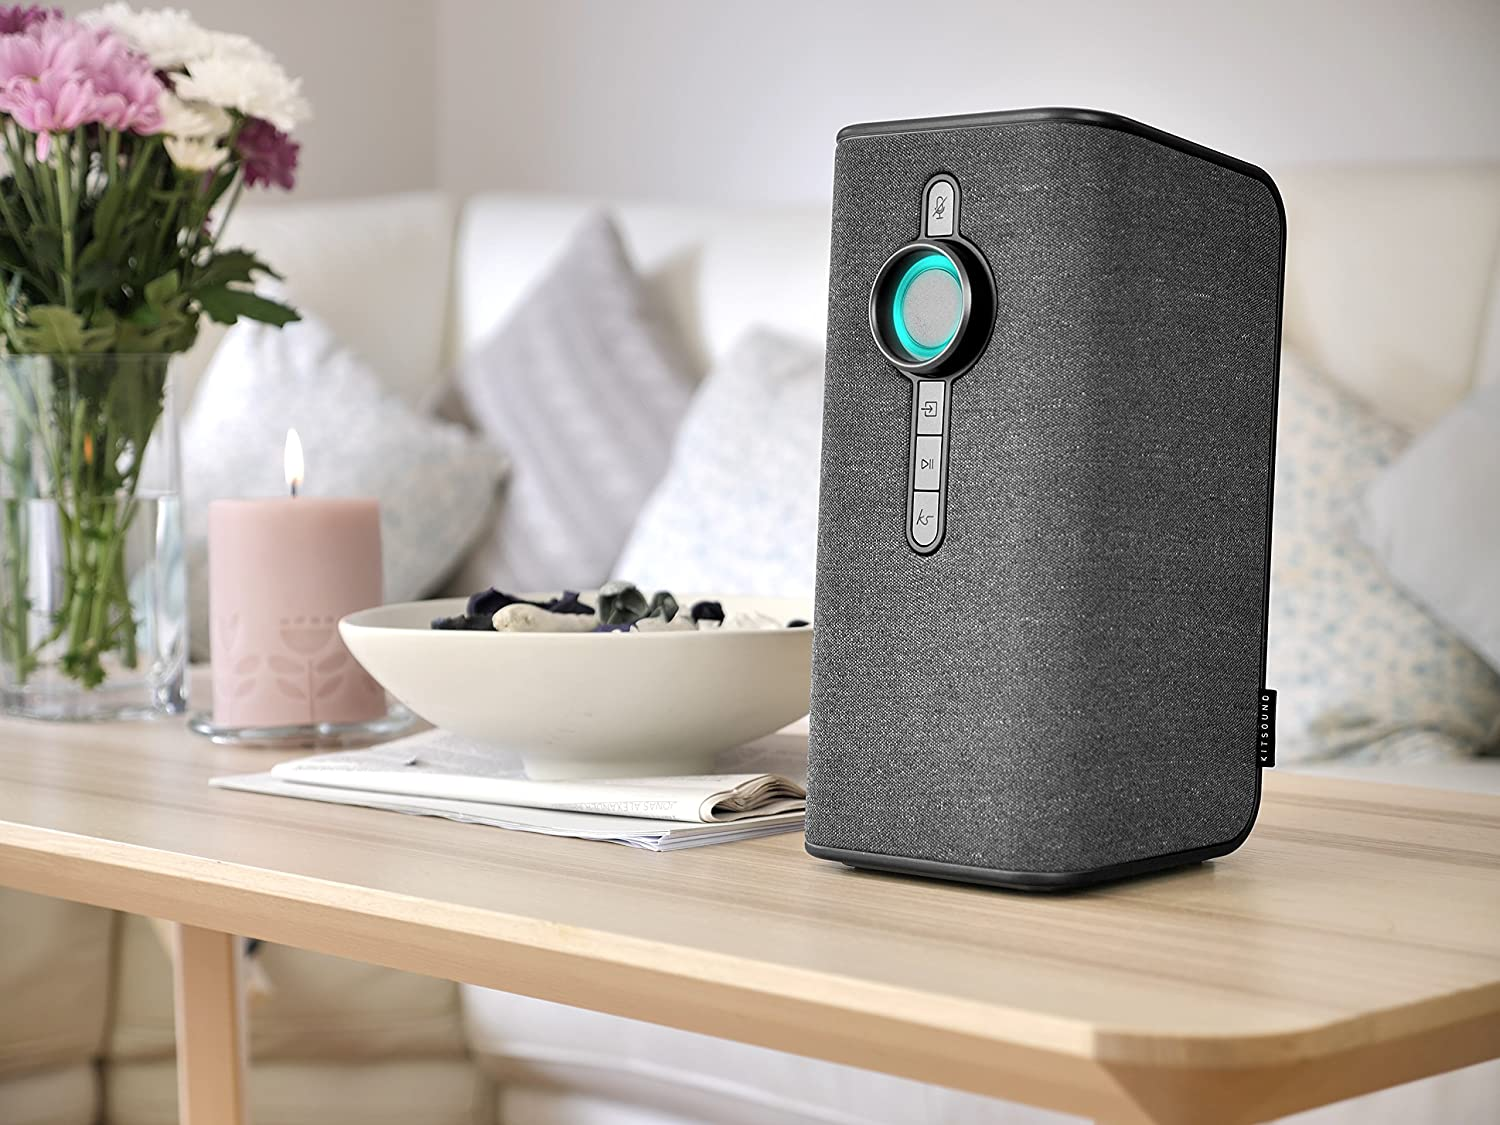 KitSound Voice One with Alexa Built-In and Spotify Voice Control Multi-Room Smart Speaker Grey